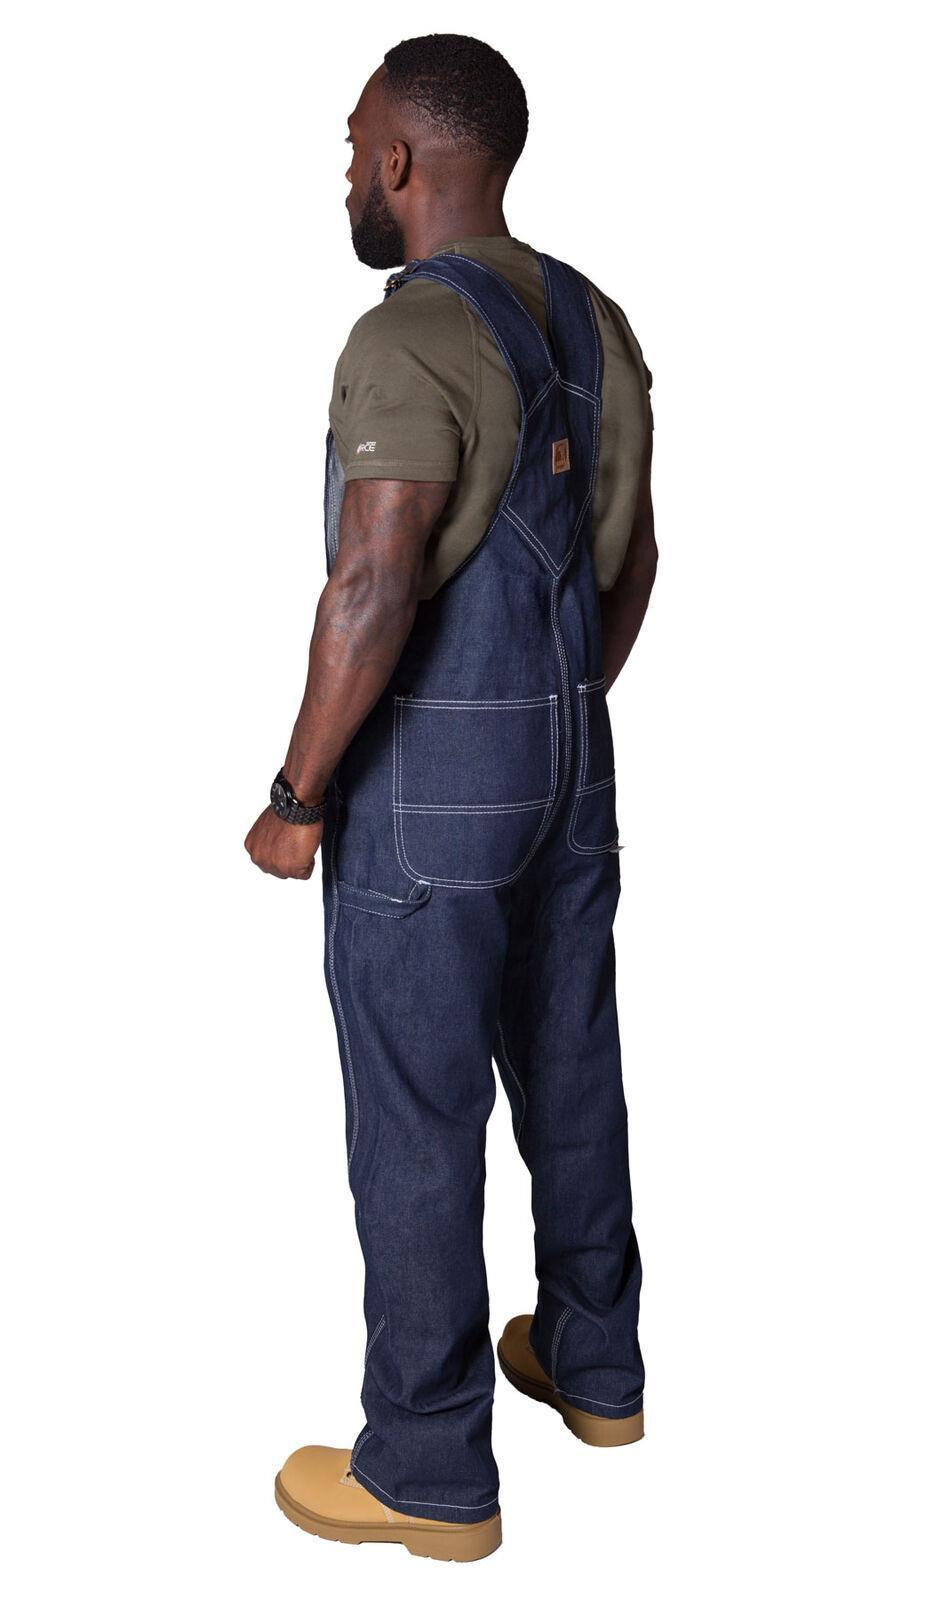 Rear pose wearing 'Berne' brand bib overalls from Dungarees Online.